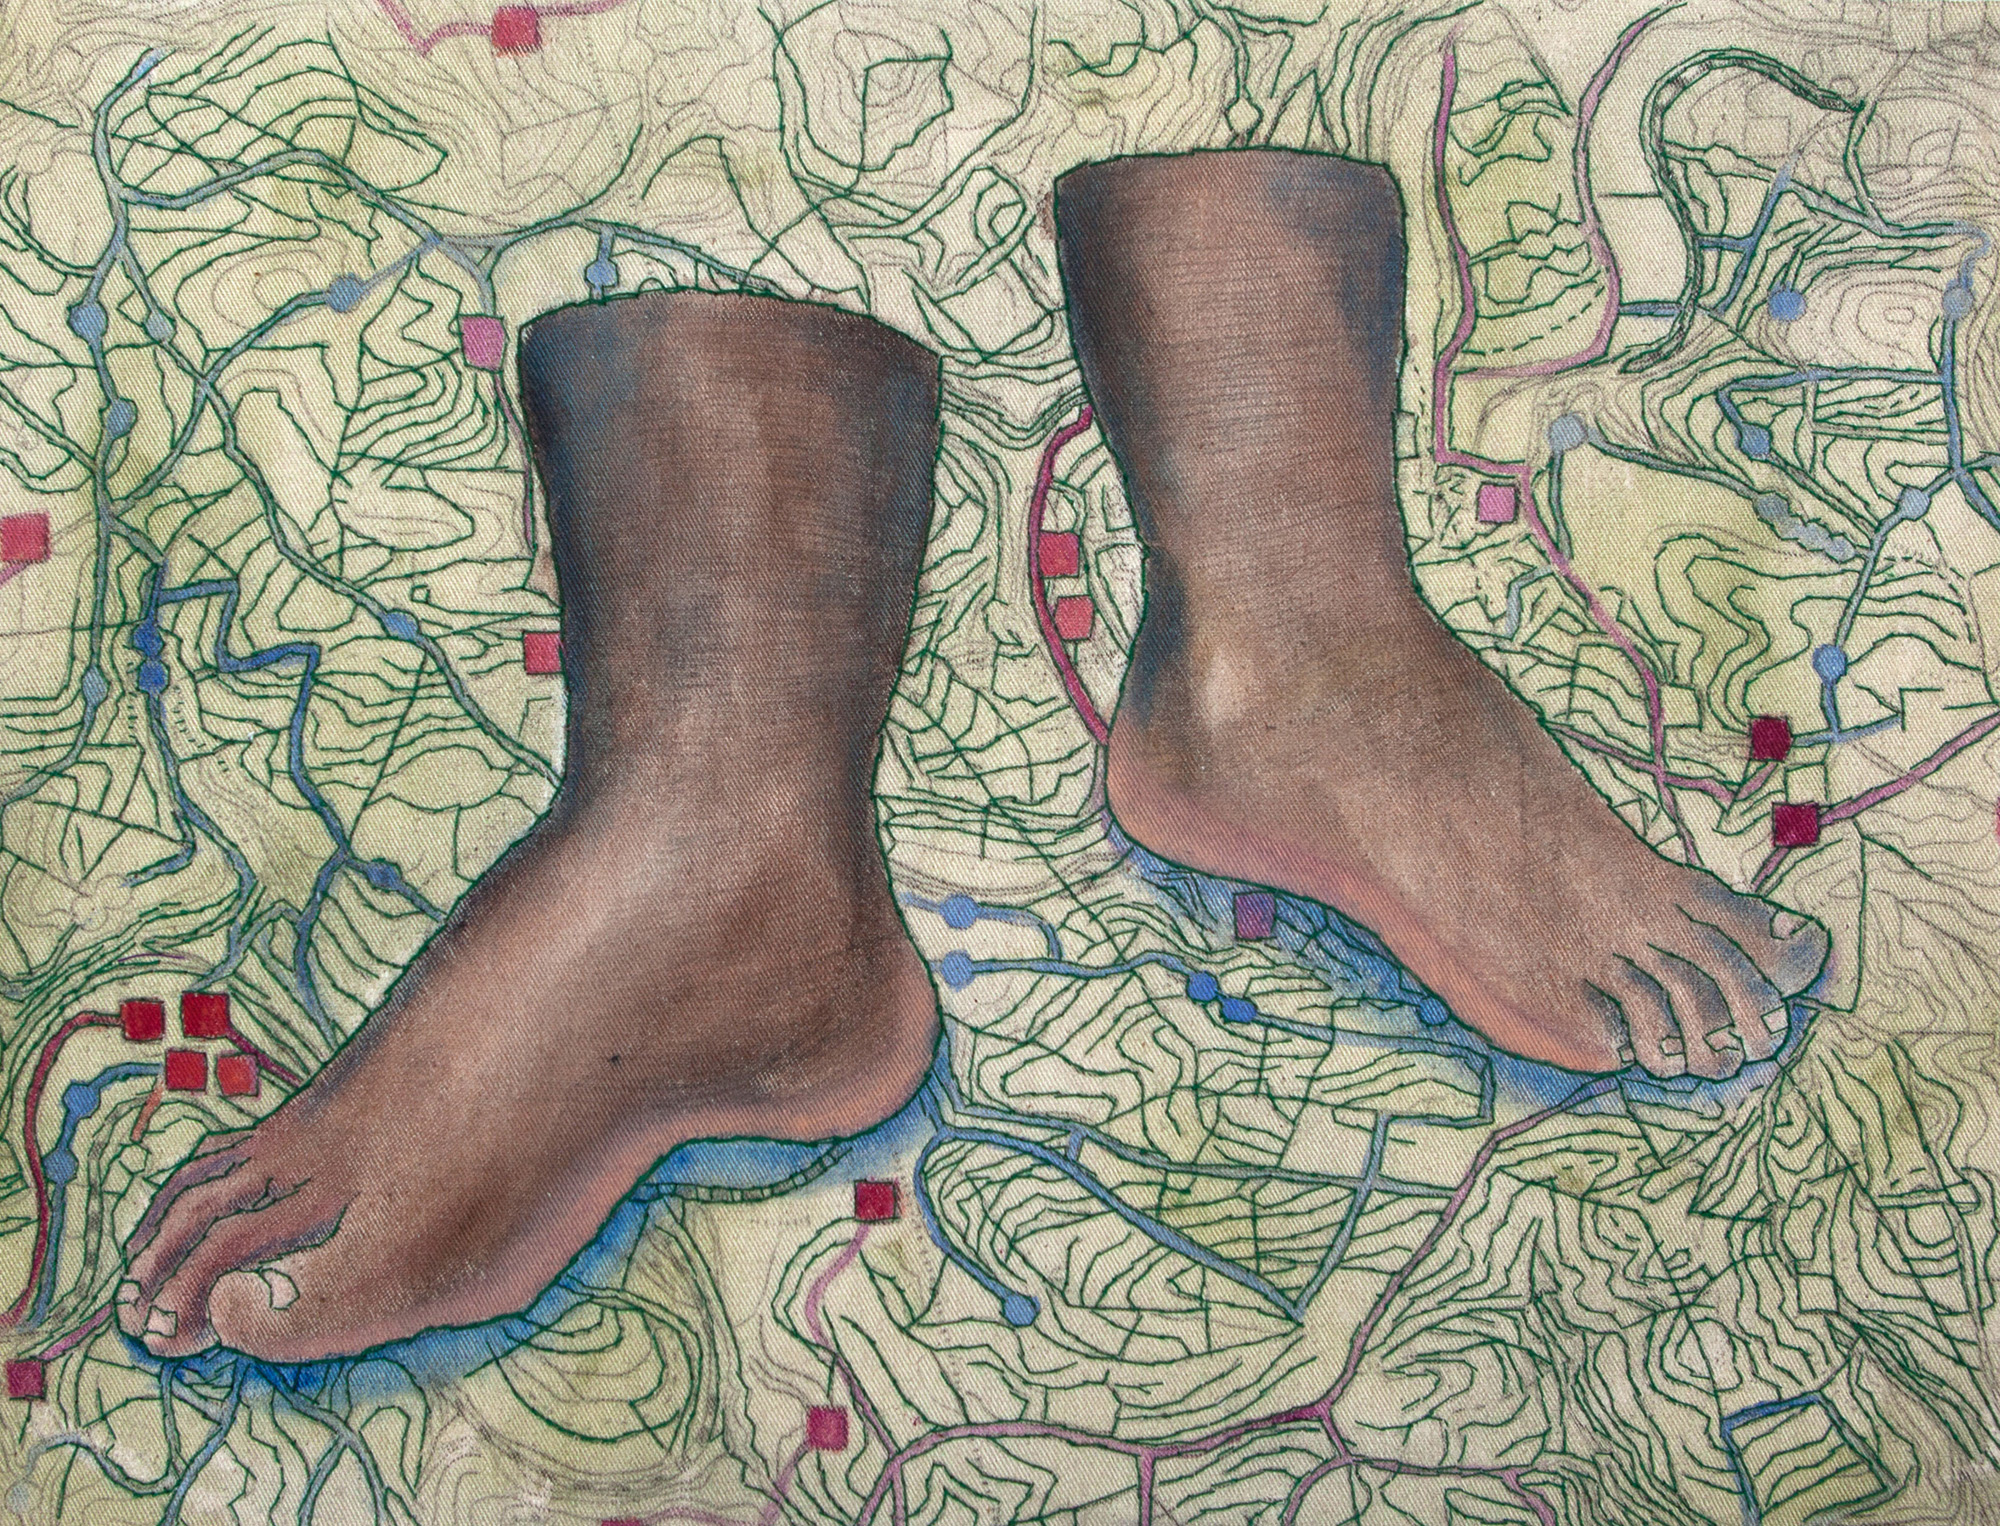 """""""Travelers, there is no Path, Paths are made by Walking"""", 30 x 40 cm, 2016-2017, embroidery and painting on canvas"""